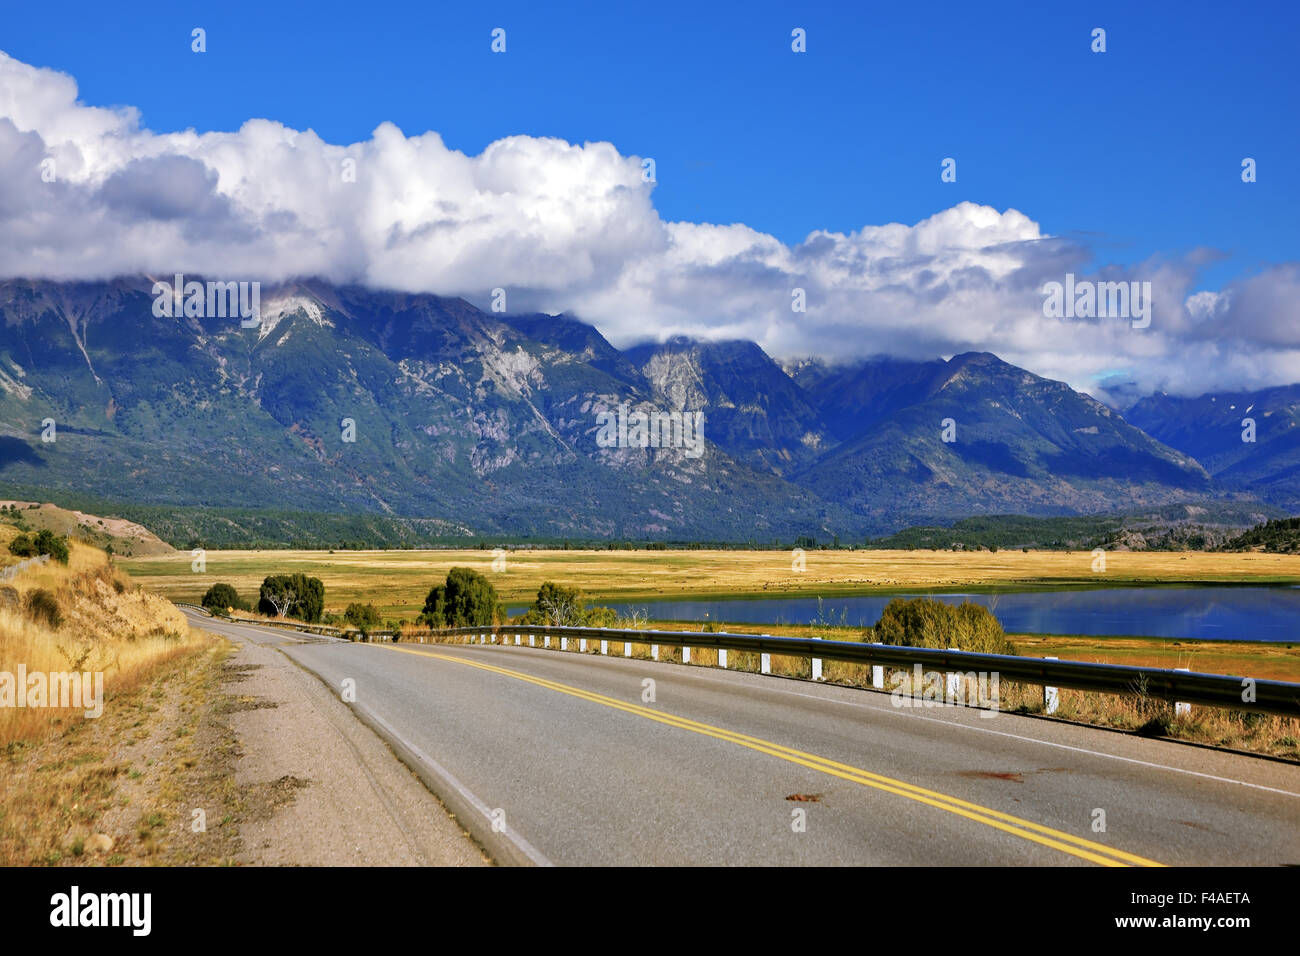 The longest road in Argentina Ruta 40 - Stock Image